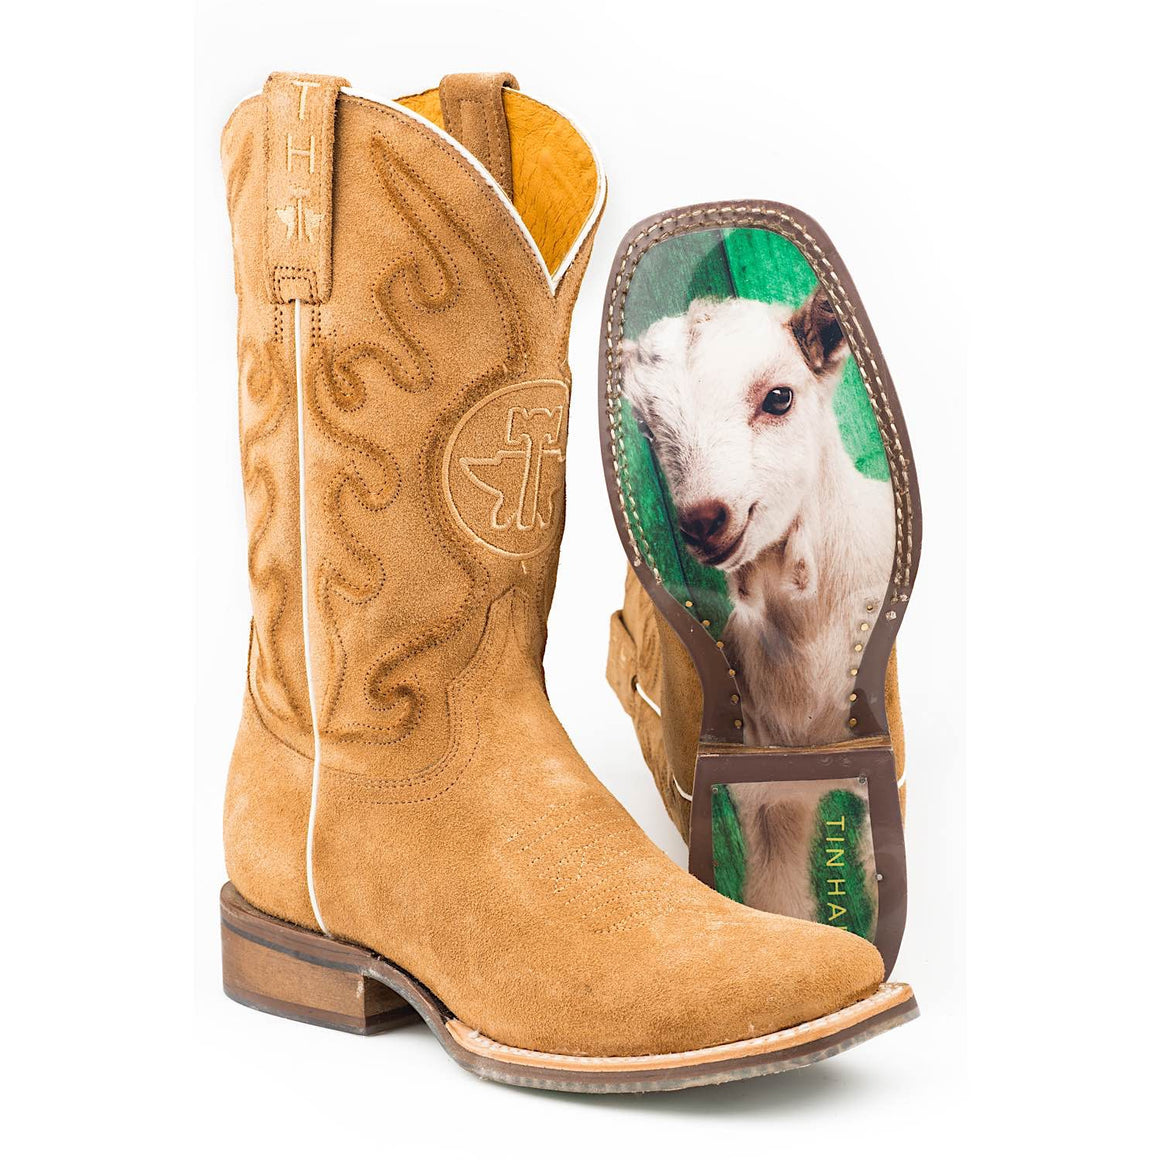 Tin Haul Womens Rough and Tough Western Boots With Baby Goat Sole